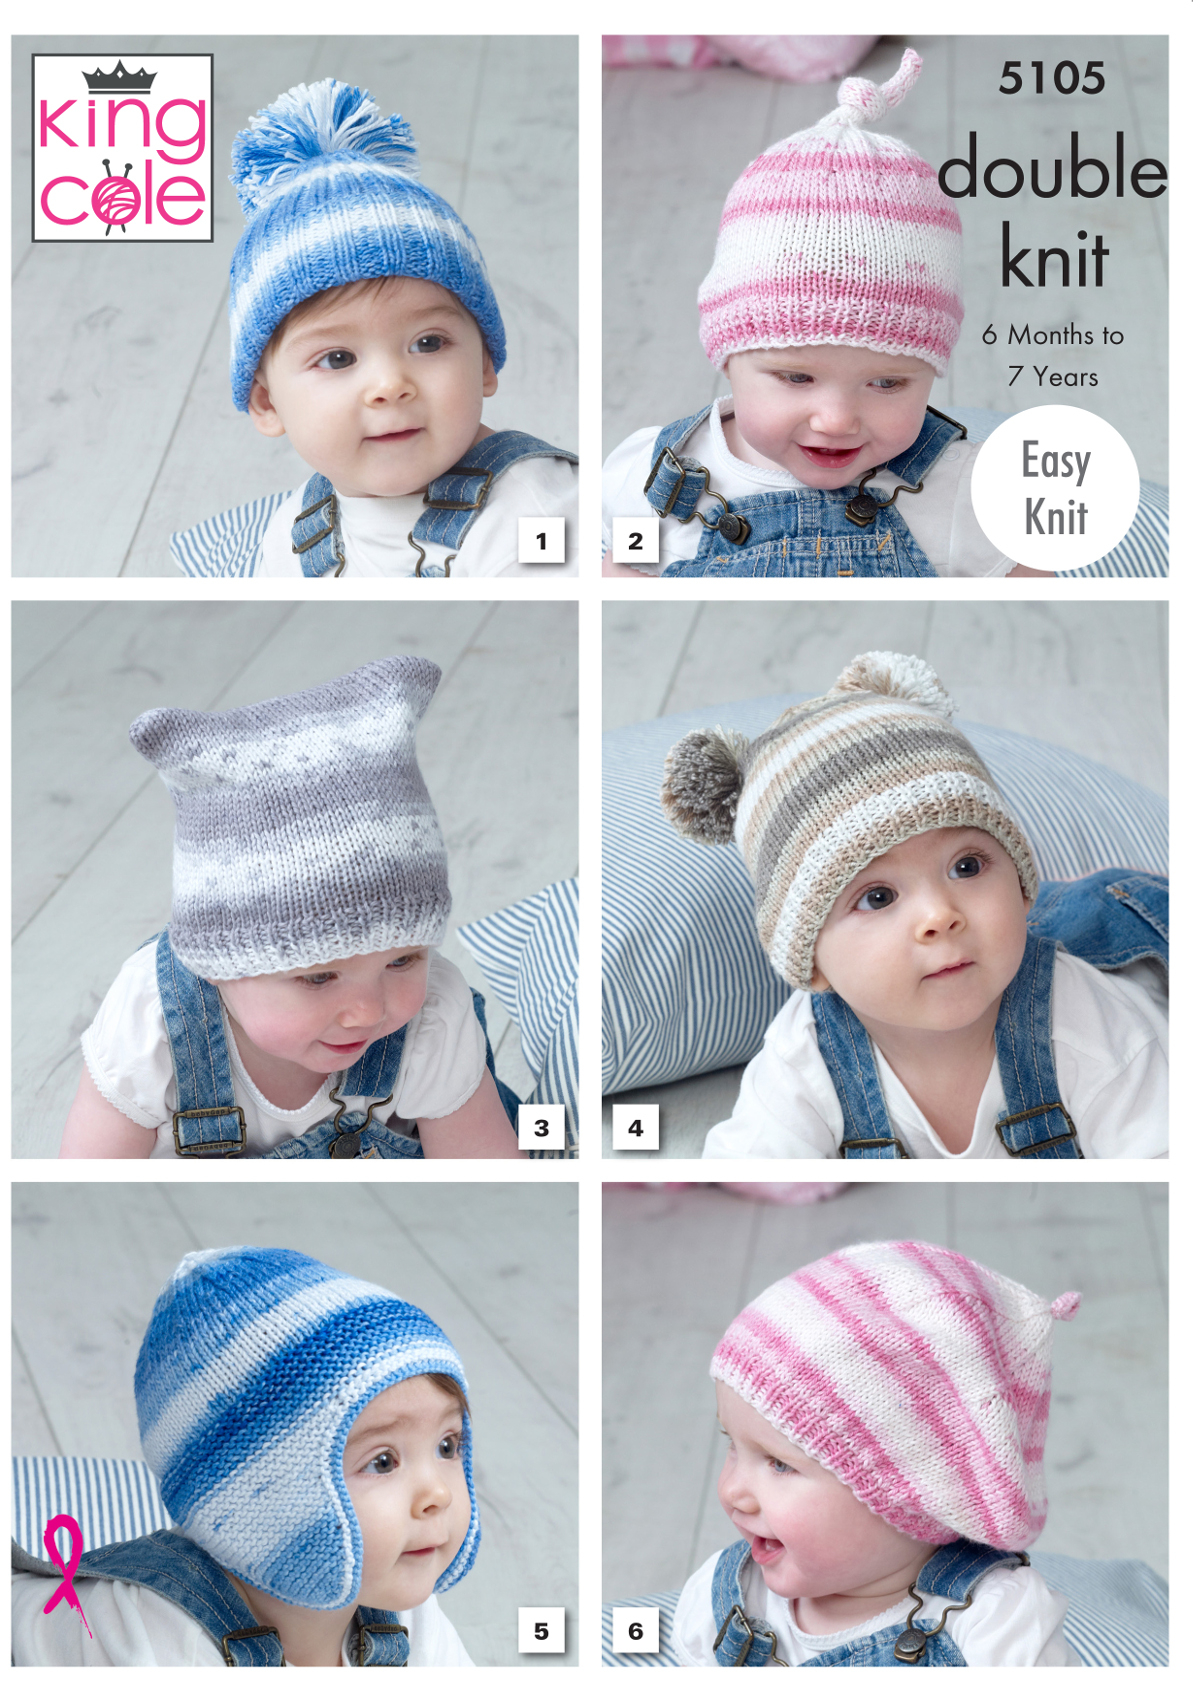 Beret Knitting Pattern Easy Details About Ba Double Knitting Pattern Easy Knit Hats Helmet Beret King Cole 5105